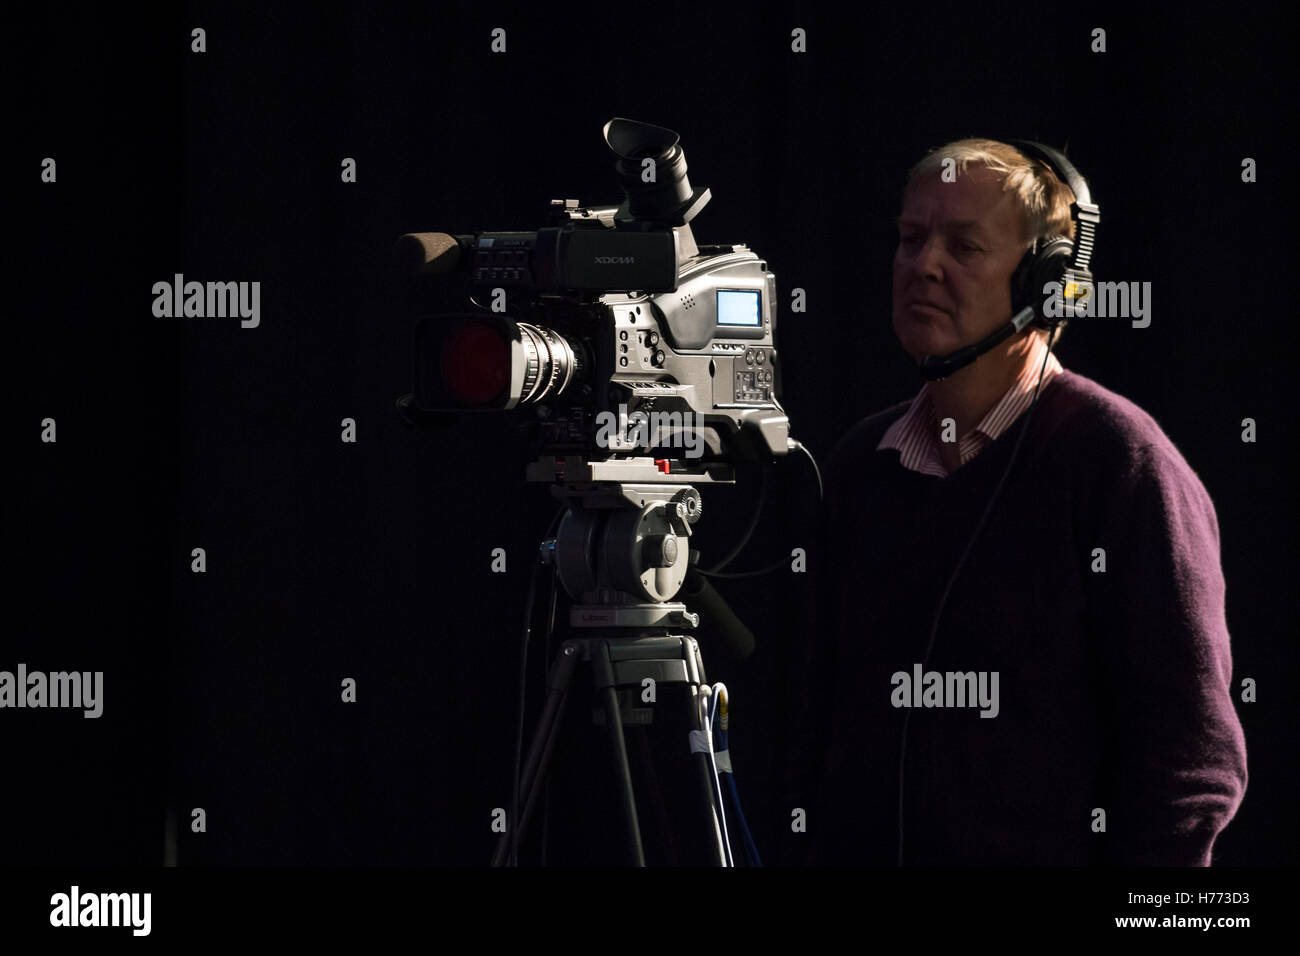 A broadcast tv cameraman using his camera for television recording seen against a black background. - Stock Image